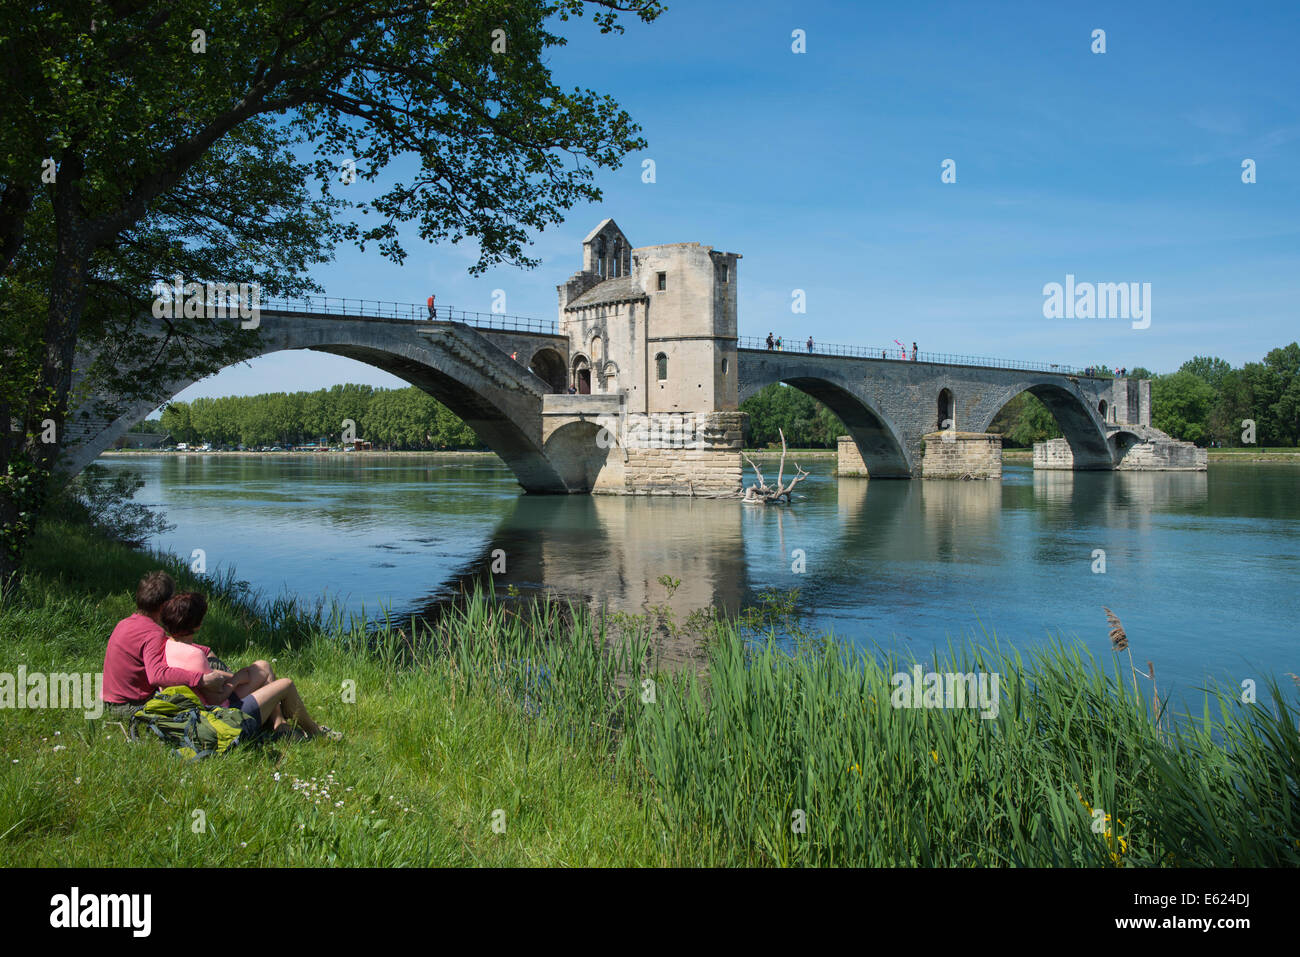 Rhône with the Pont Saint-Bénézet bridge, also known as Pont d'Avignon, Avignon, Provence-Alpes - Stock Image